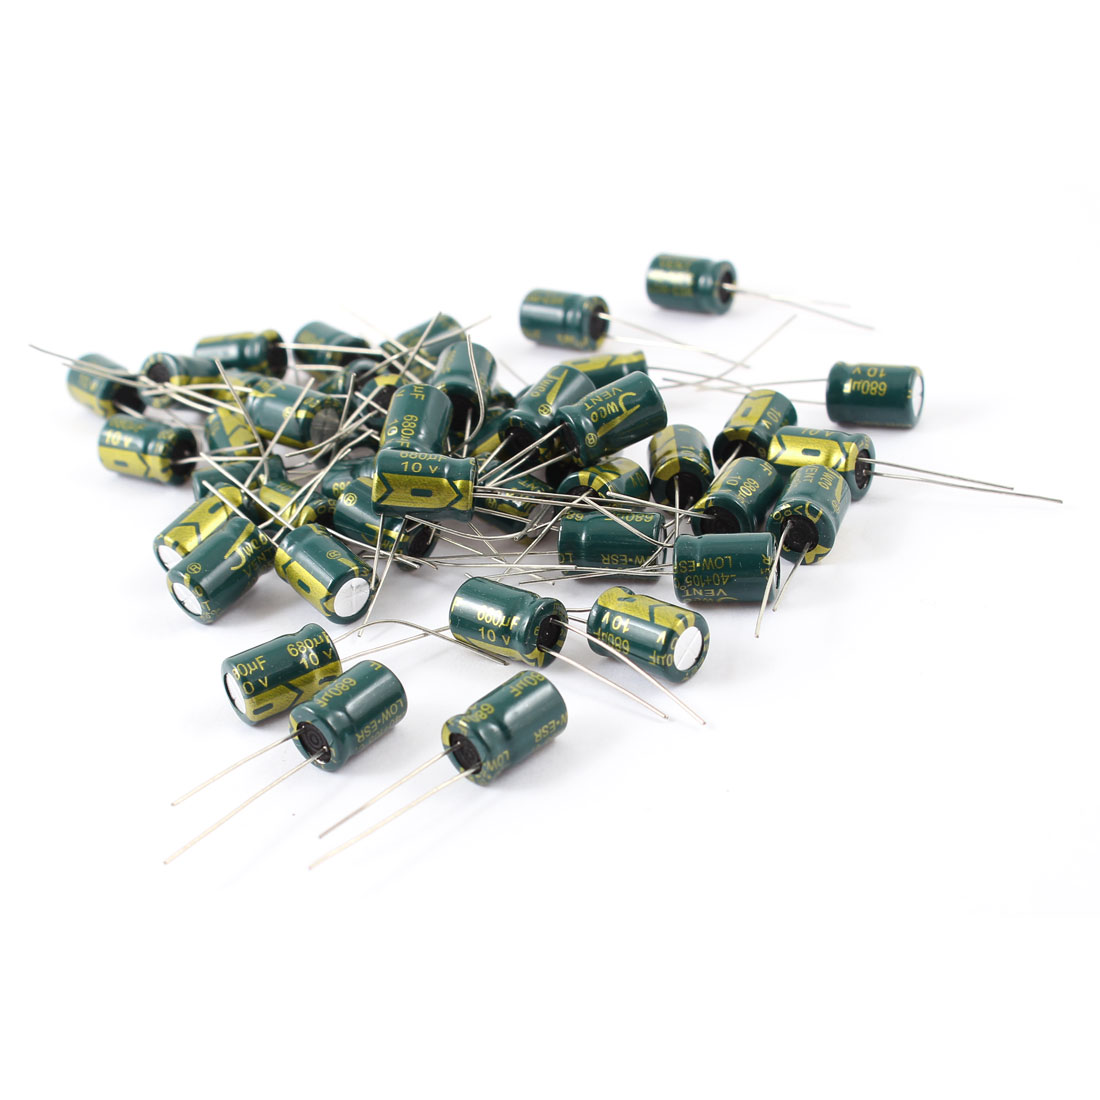 50 Pcs 8mmx12mm 680uF 10V 105C Radial Motherboard Electrolytic Capacitors Low ESR